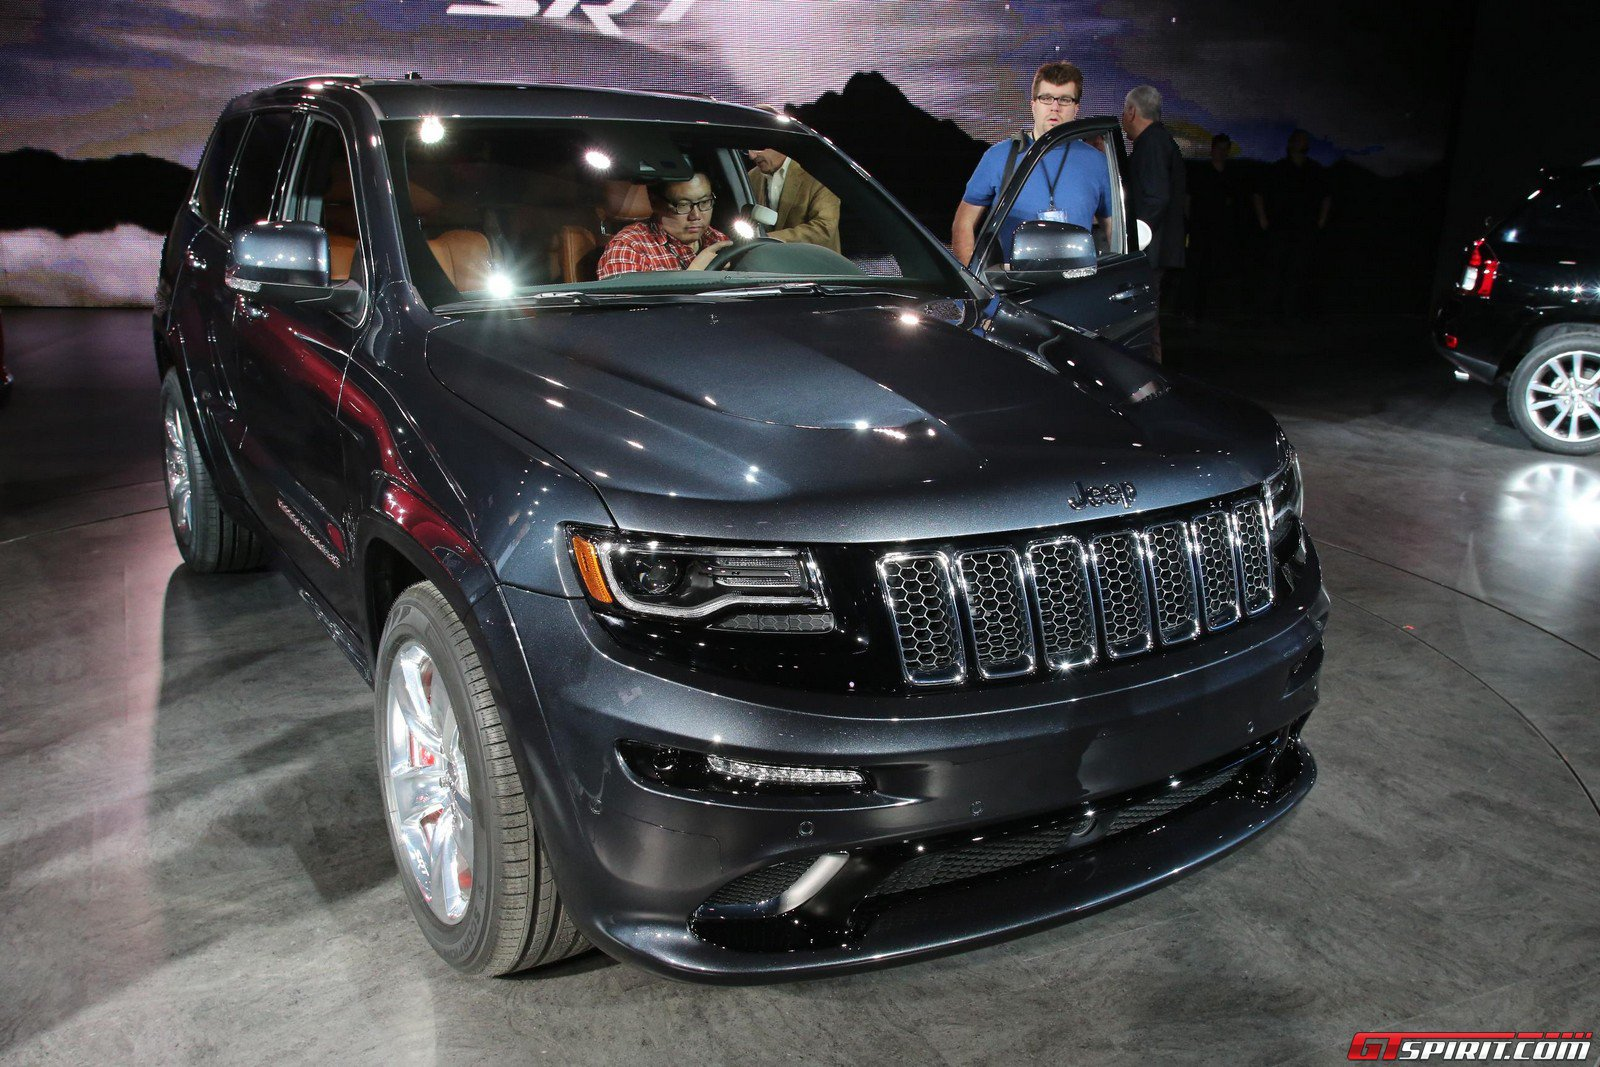 2013 jeep grand cherokee srt8 2013 jeep grand cherokee srt8. Cars Review. Best American Auto & Cars Review